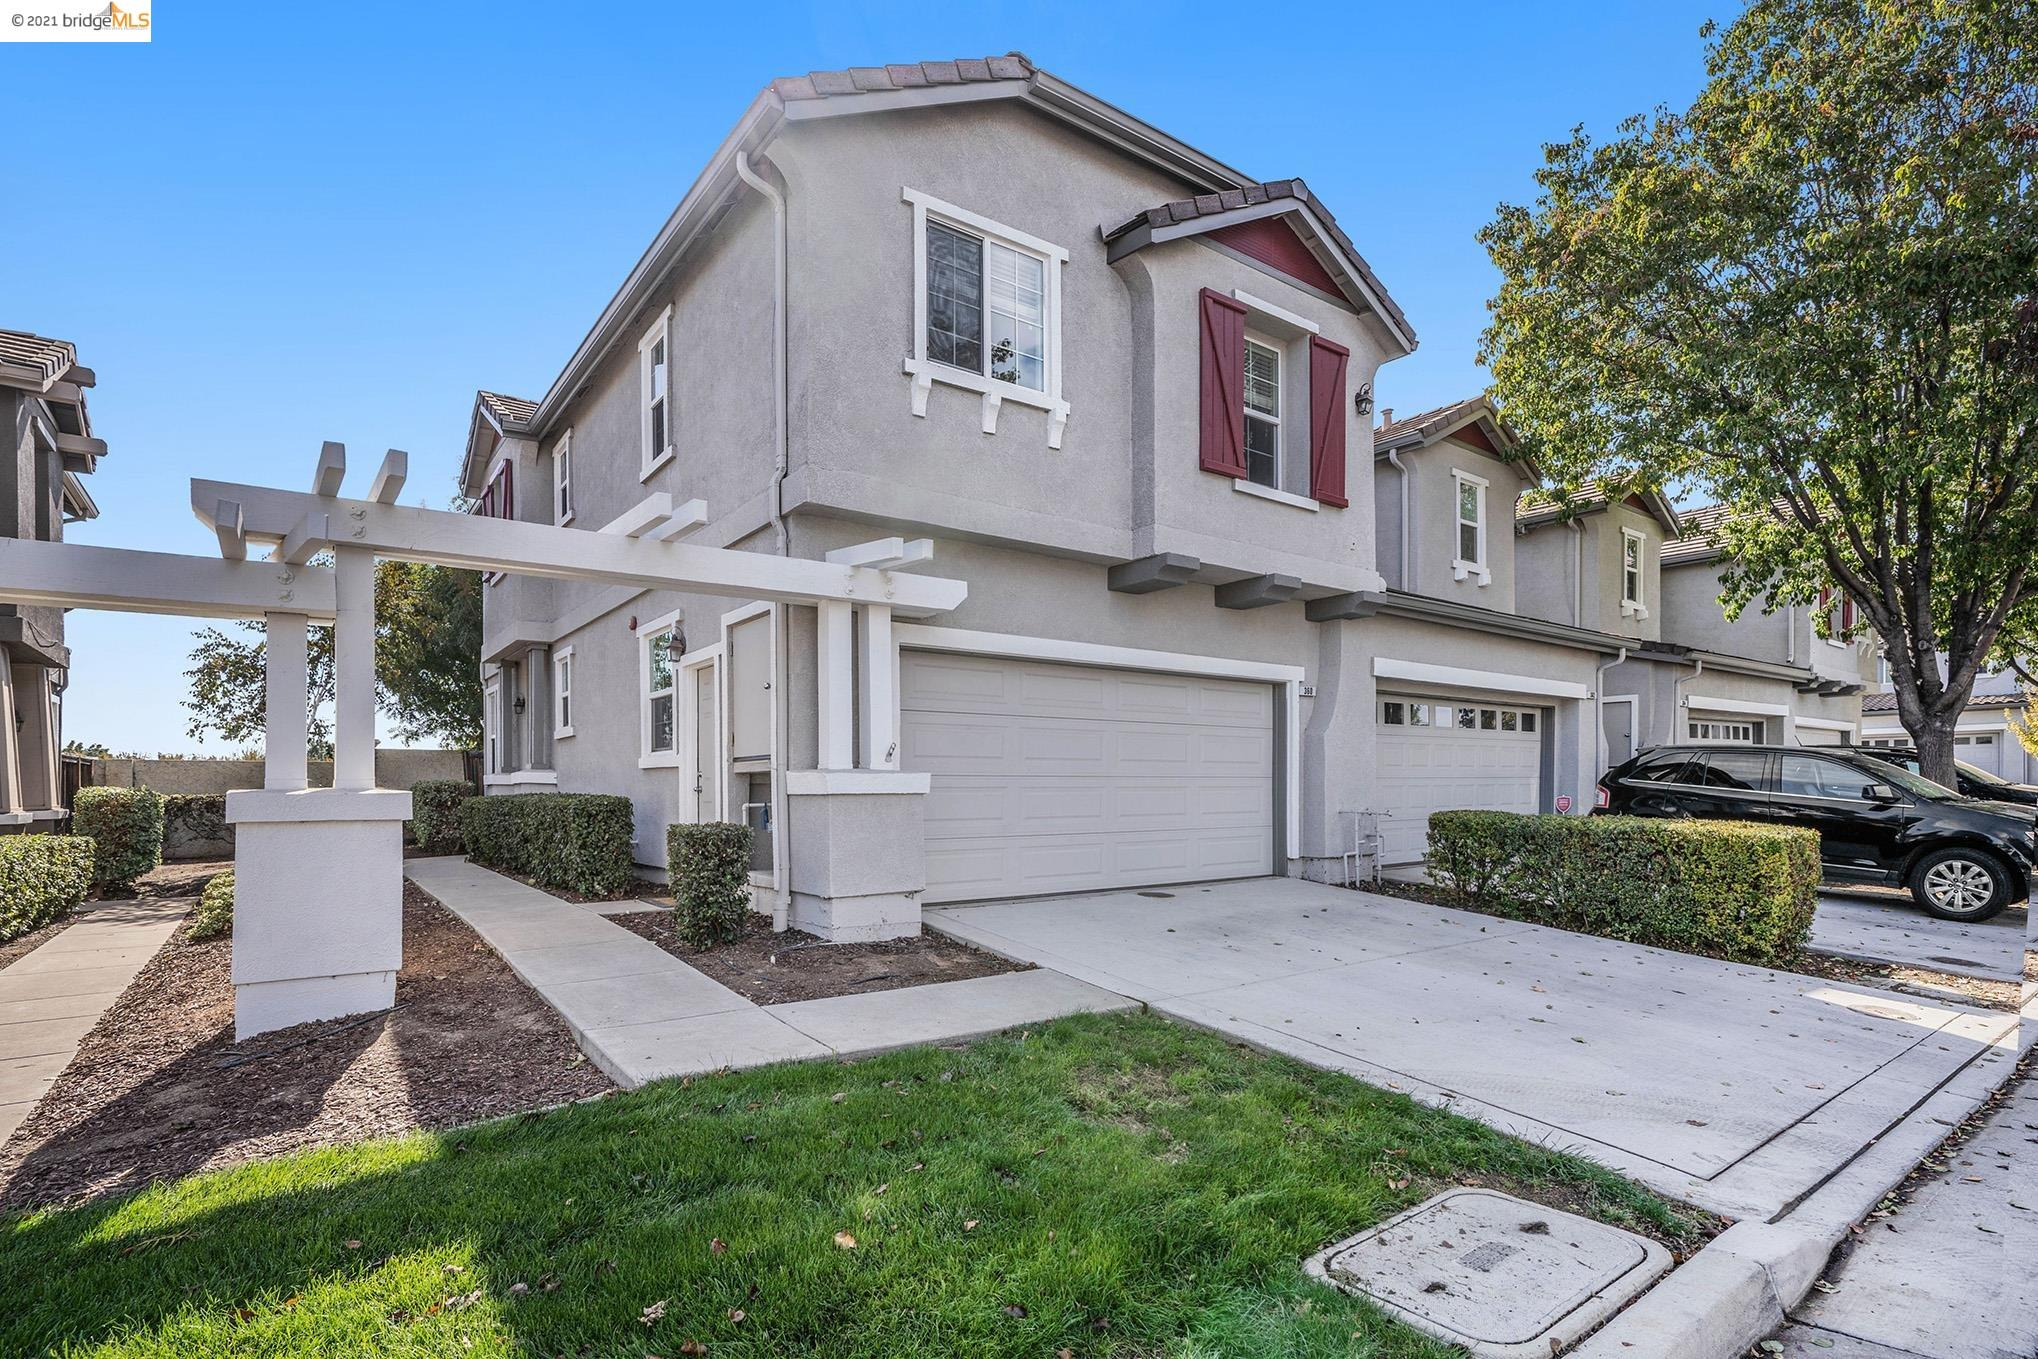 360 Jefferson Dr, BRENTWOOD, CA 94513